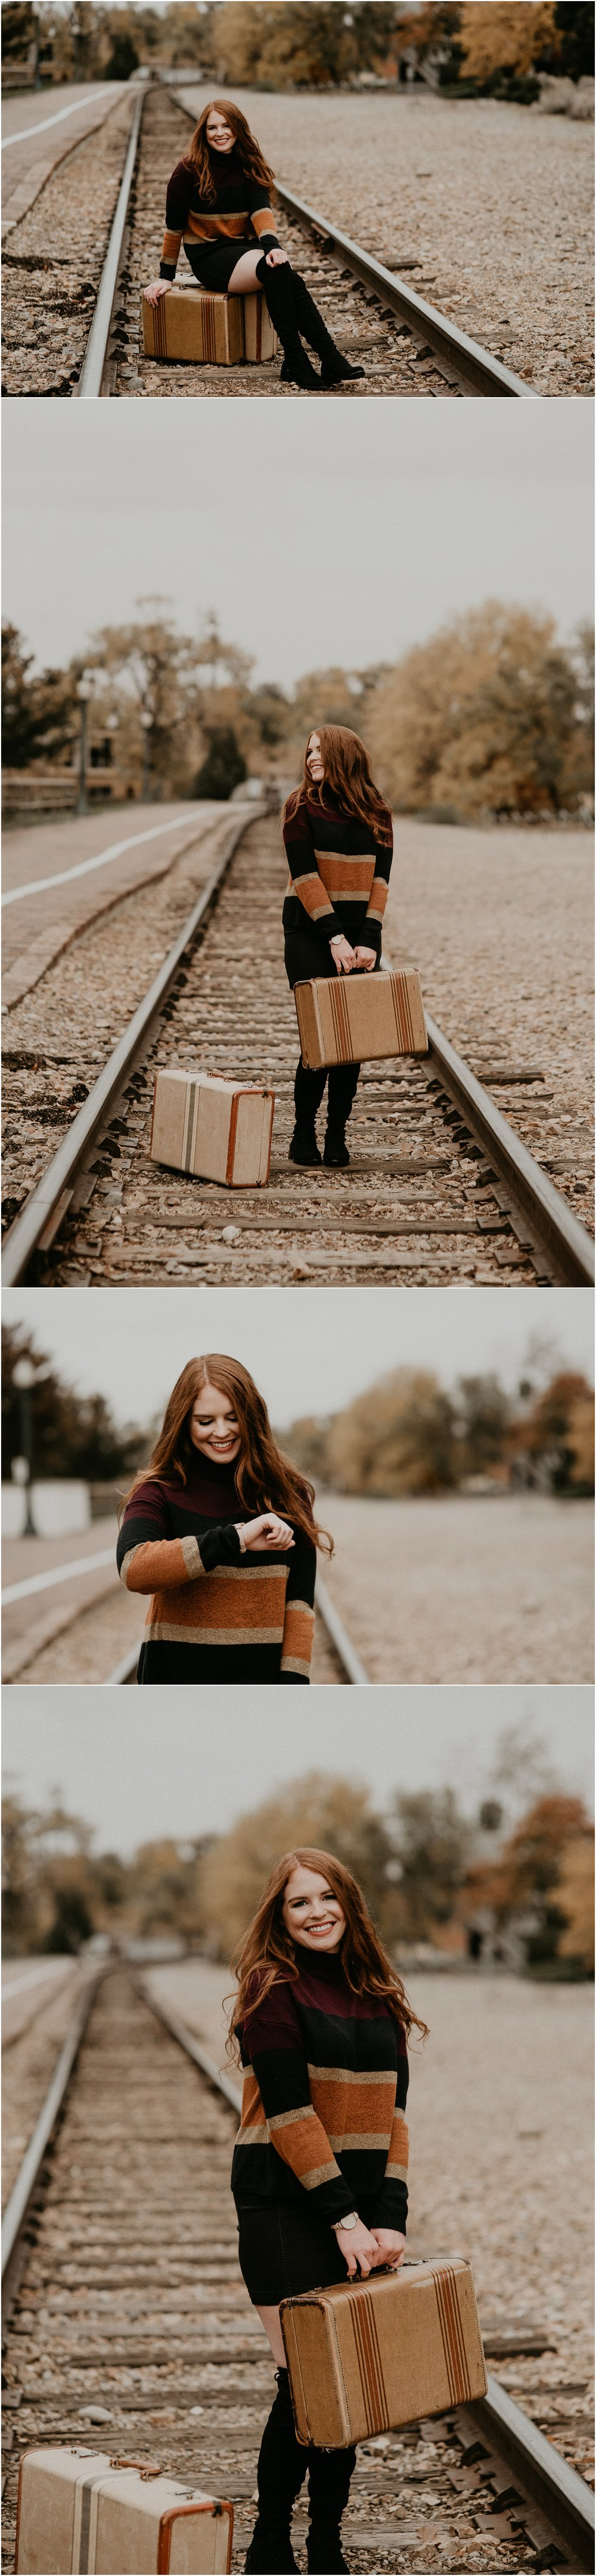 Boise Senior Photographer Makayla Madden Photography Eagle High Senior Harlee Edwards Red Head Fall Downtown Boise Senior Pics Idaho Train Depot Vintage Suitcase Travel Meridian Senior Photographer